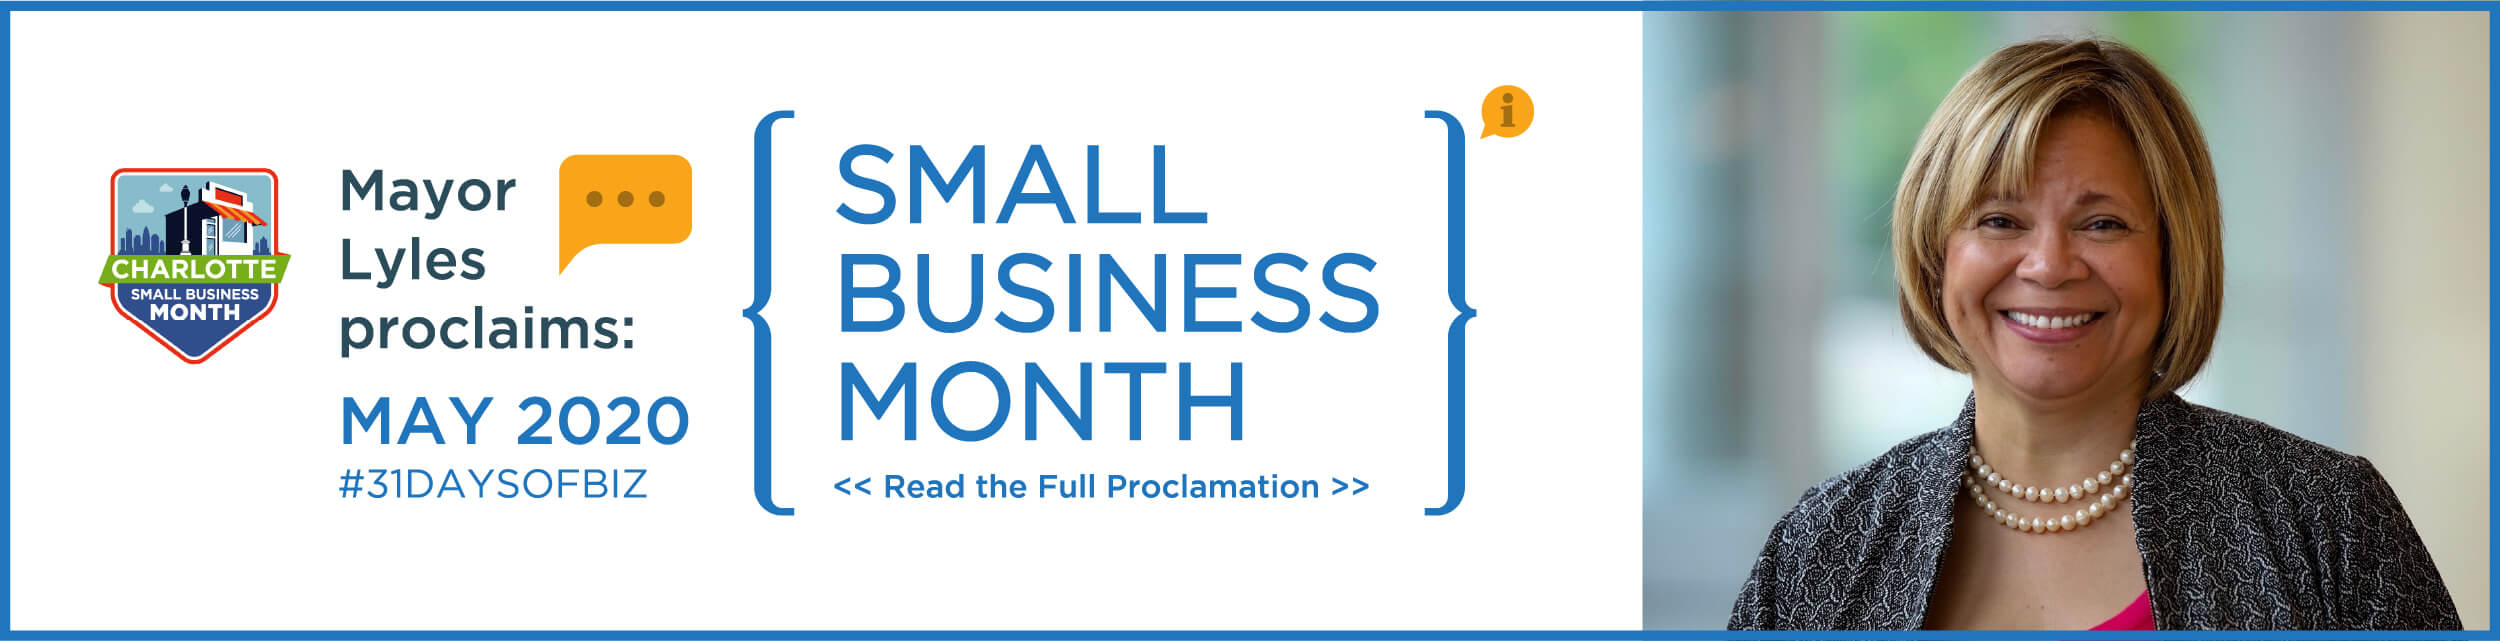 Small Business Month May 2019 in the City of Charlotte